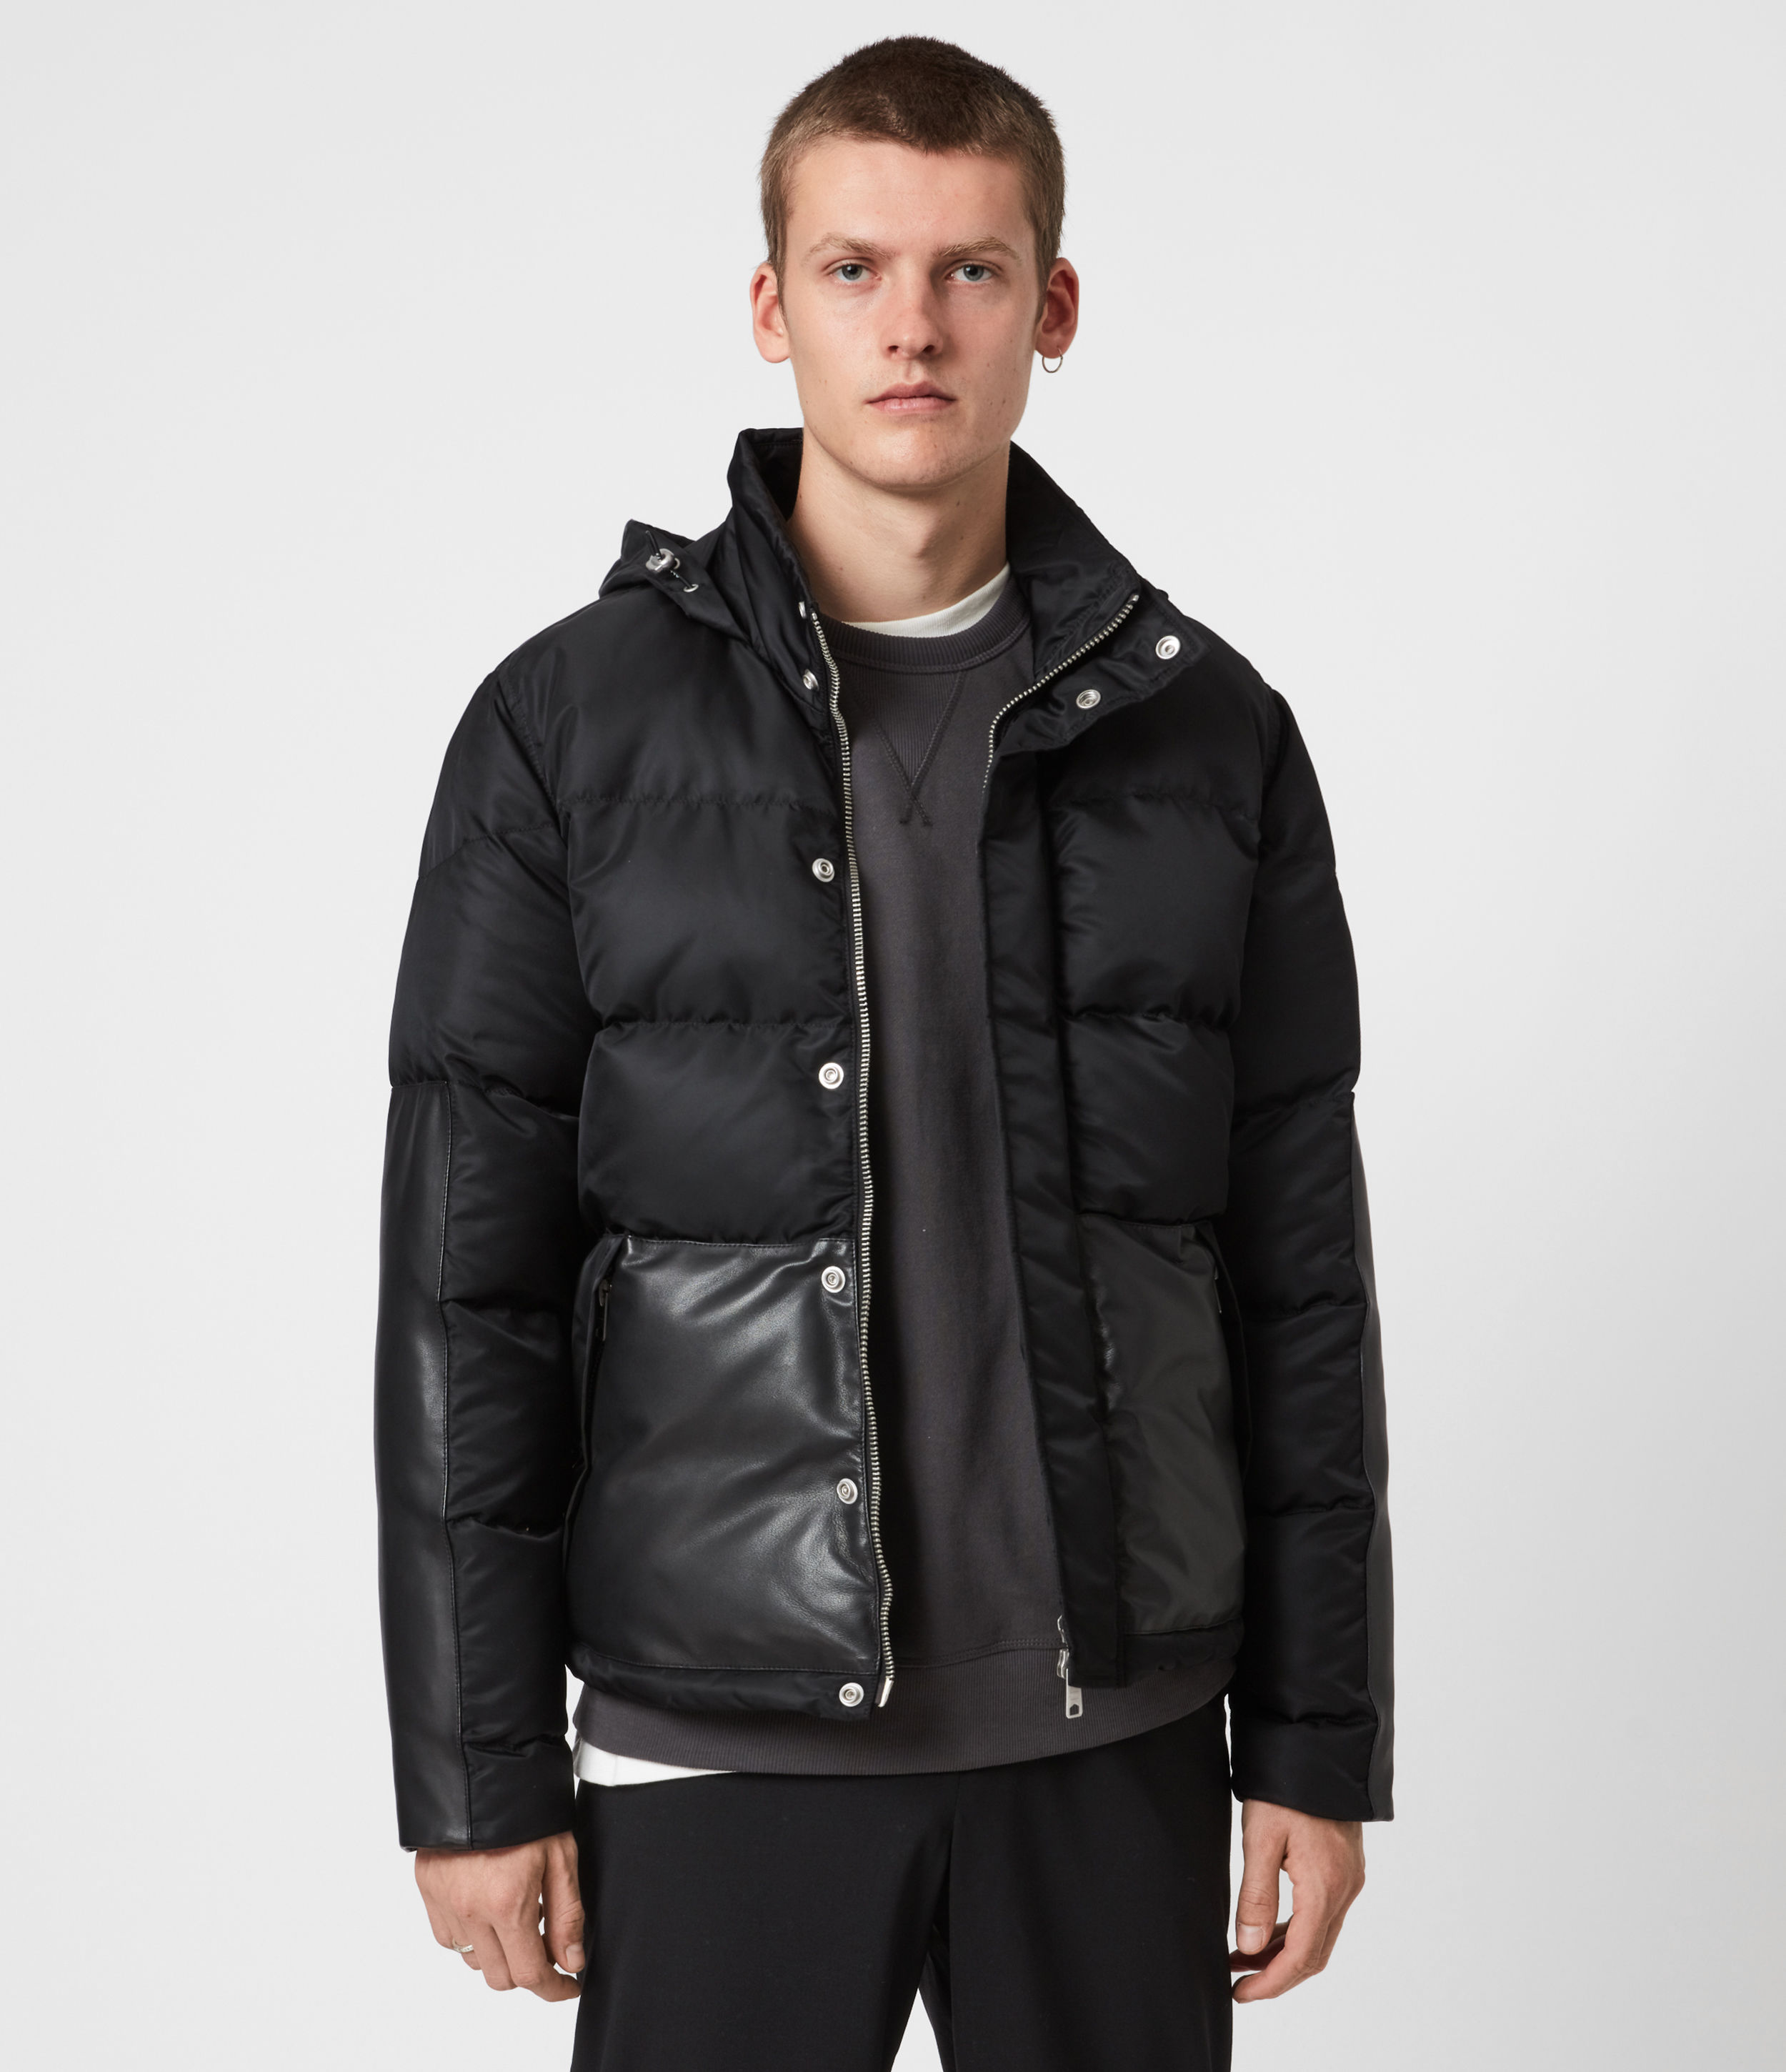 AllSaints Men's Leather Relaxed Fit Varden Puffer Coat, Black, Size: M